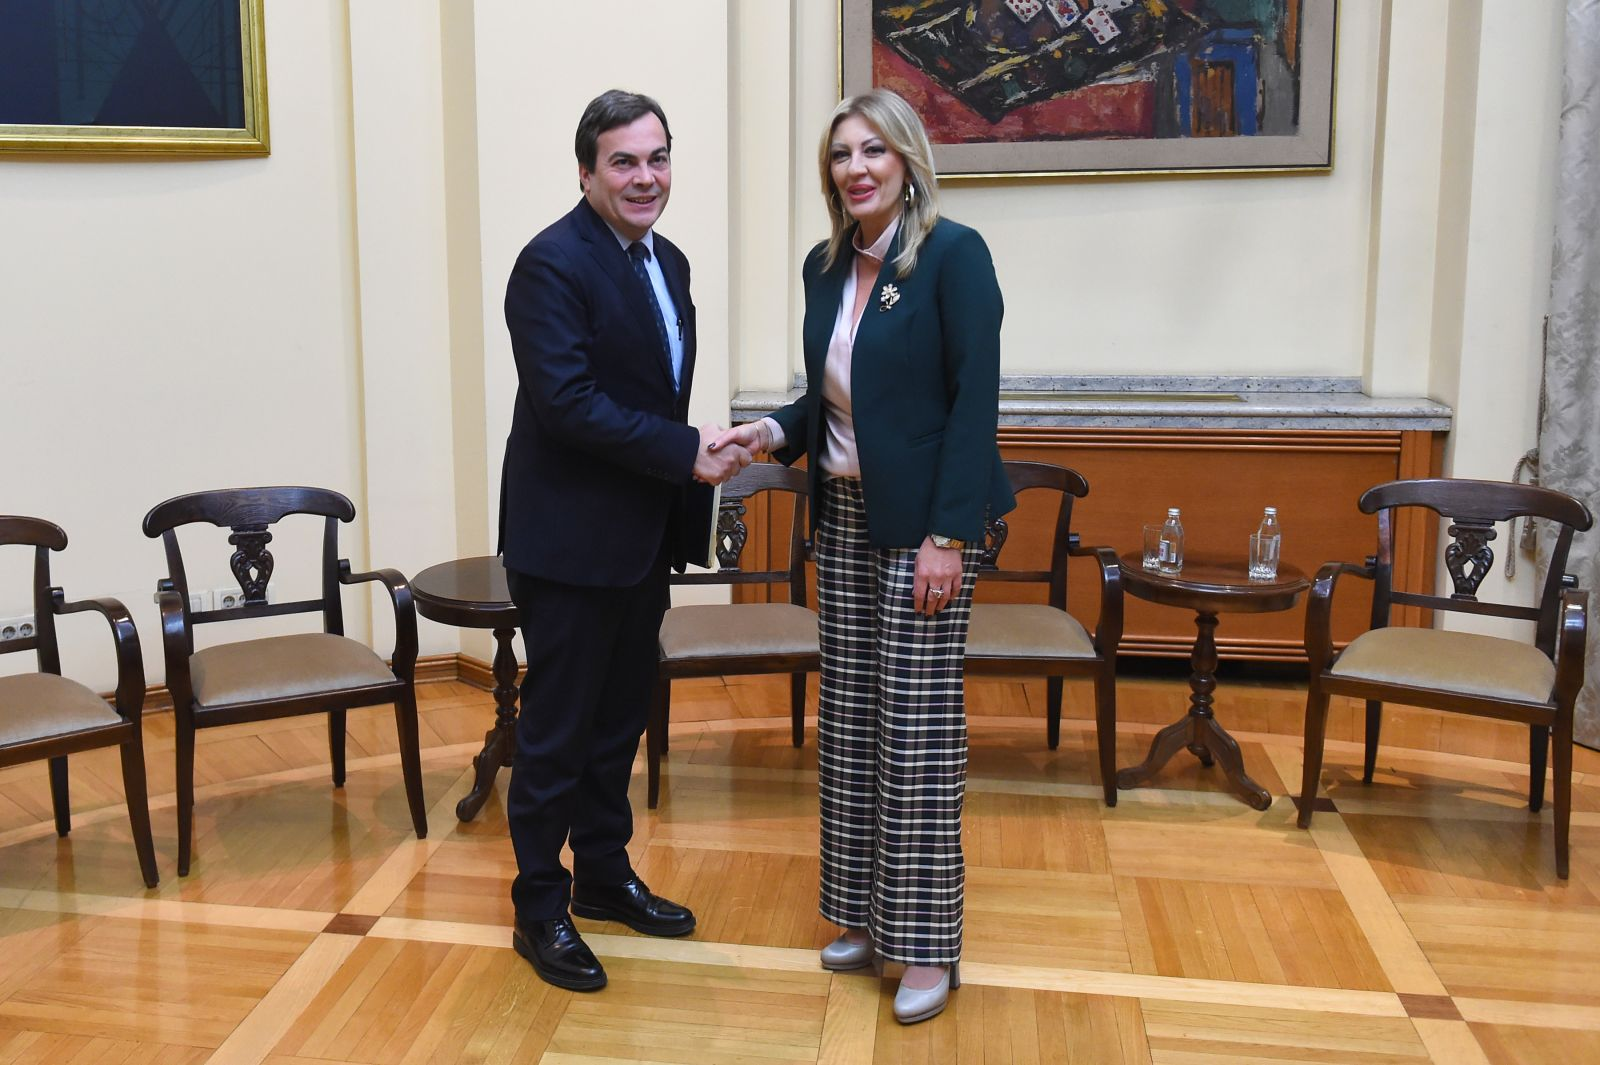 J. Joksimović and Amendola: Italy advocates Serbia becoming part of the EU as soon as possible